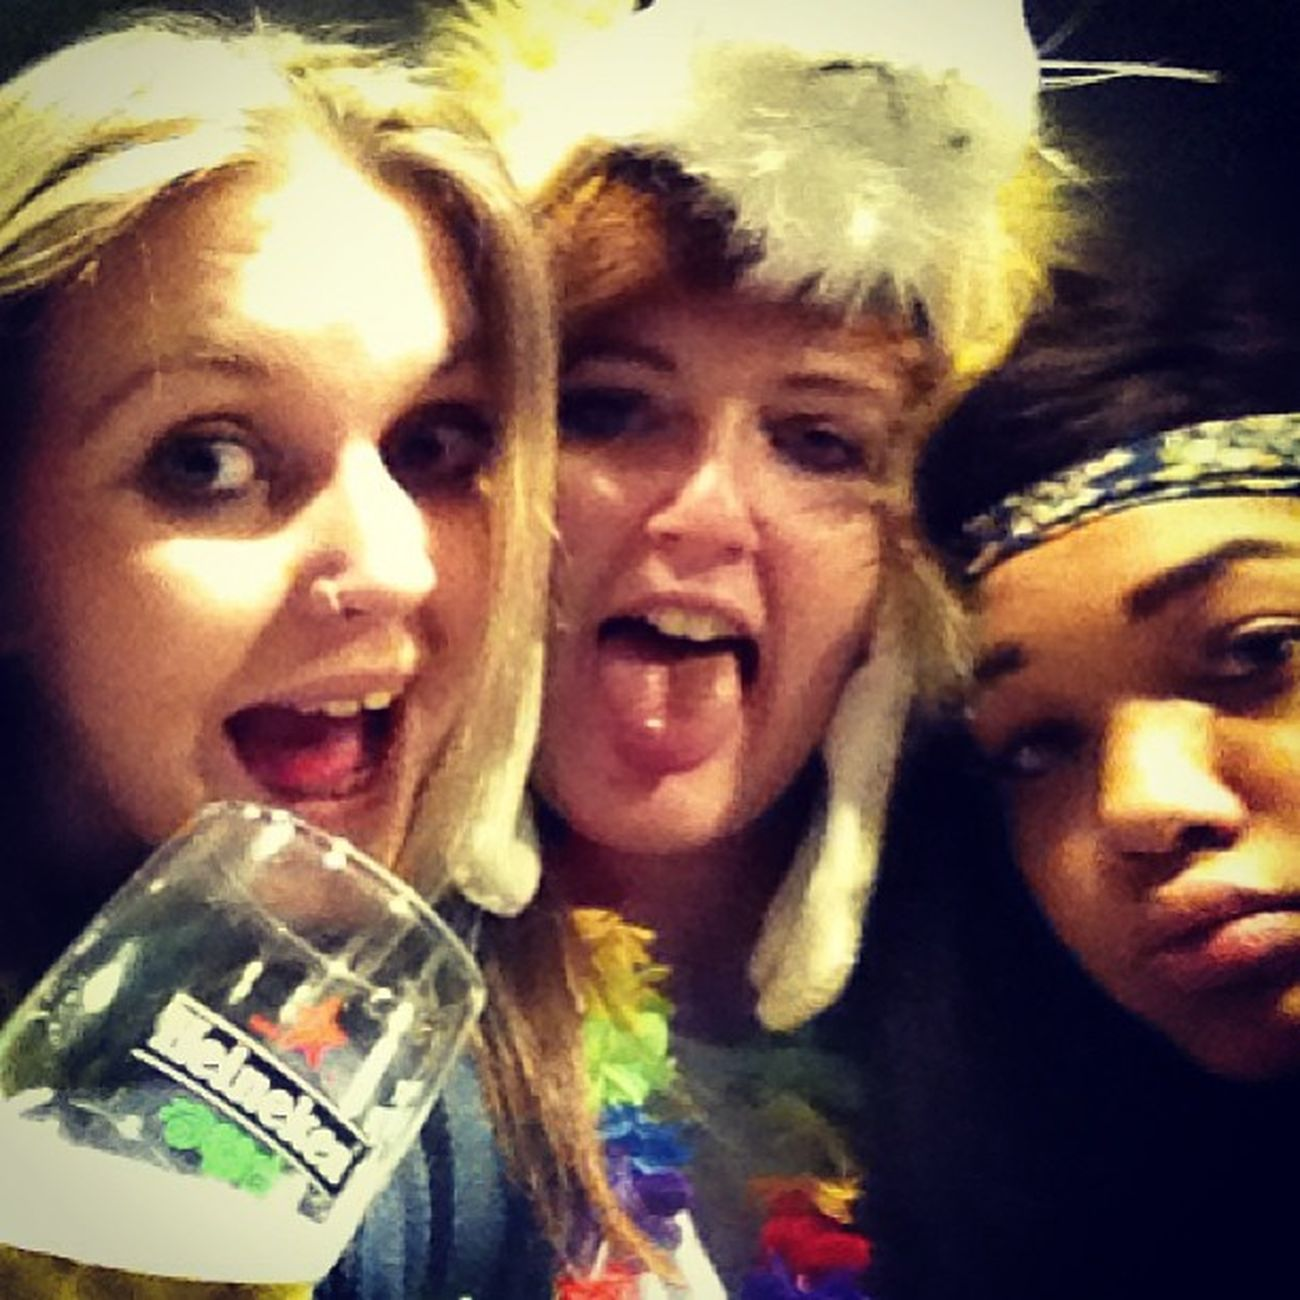 Yass. Edinburgh Steamin Drunk Festival best friends drunk lol